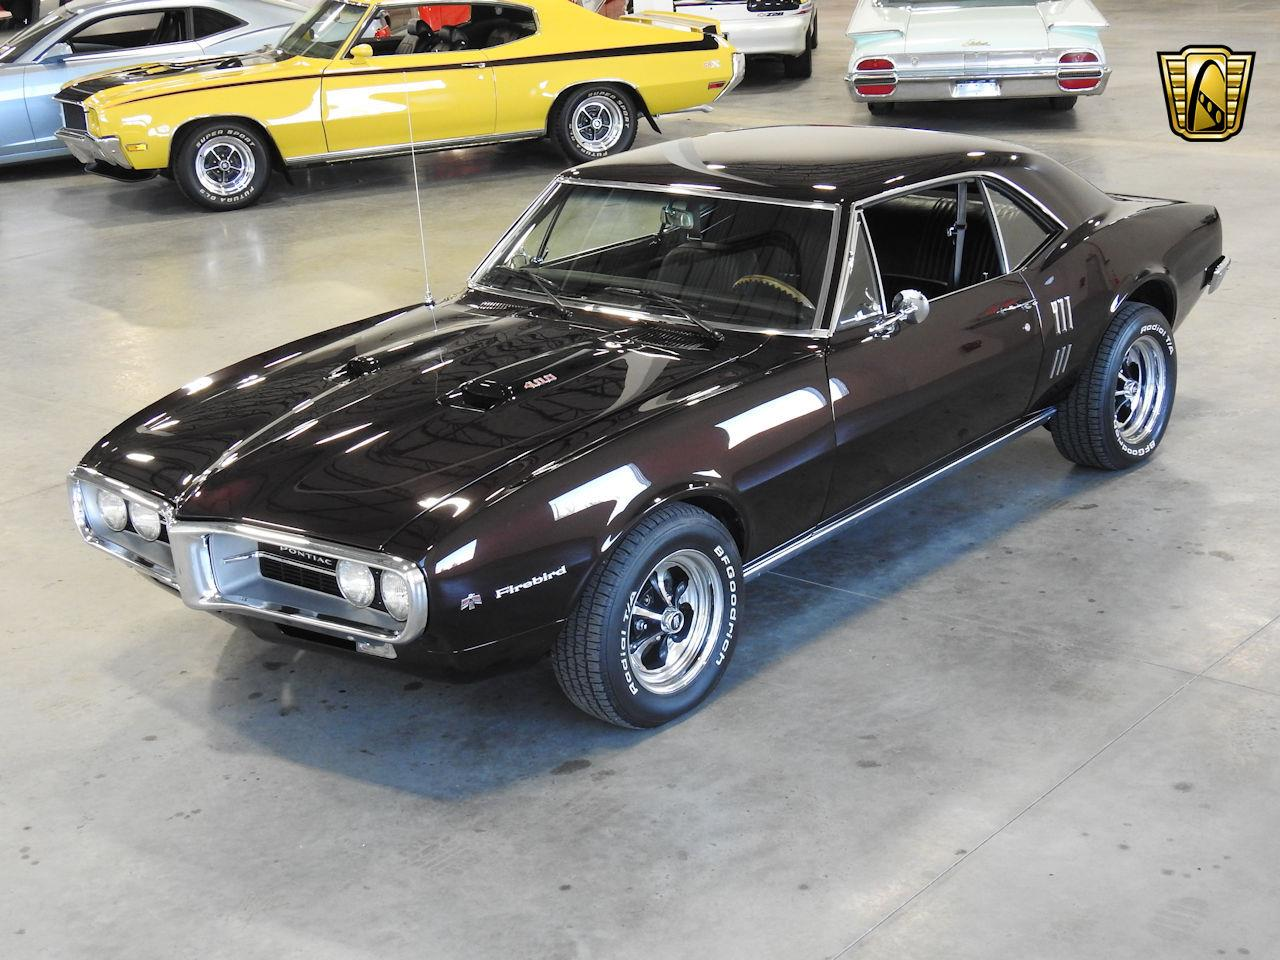 Large Picture of Classic '67 Pontiac Firebird located in Kenosha Wisconsin - $34,995.00 Offered by Gateway Classic Cars - Milwaukee - MFCU